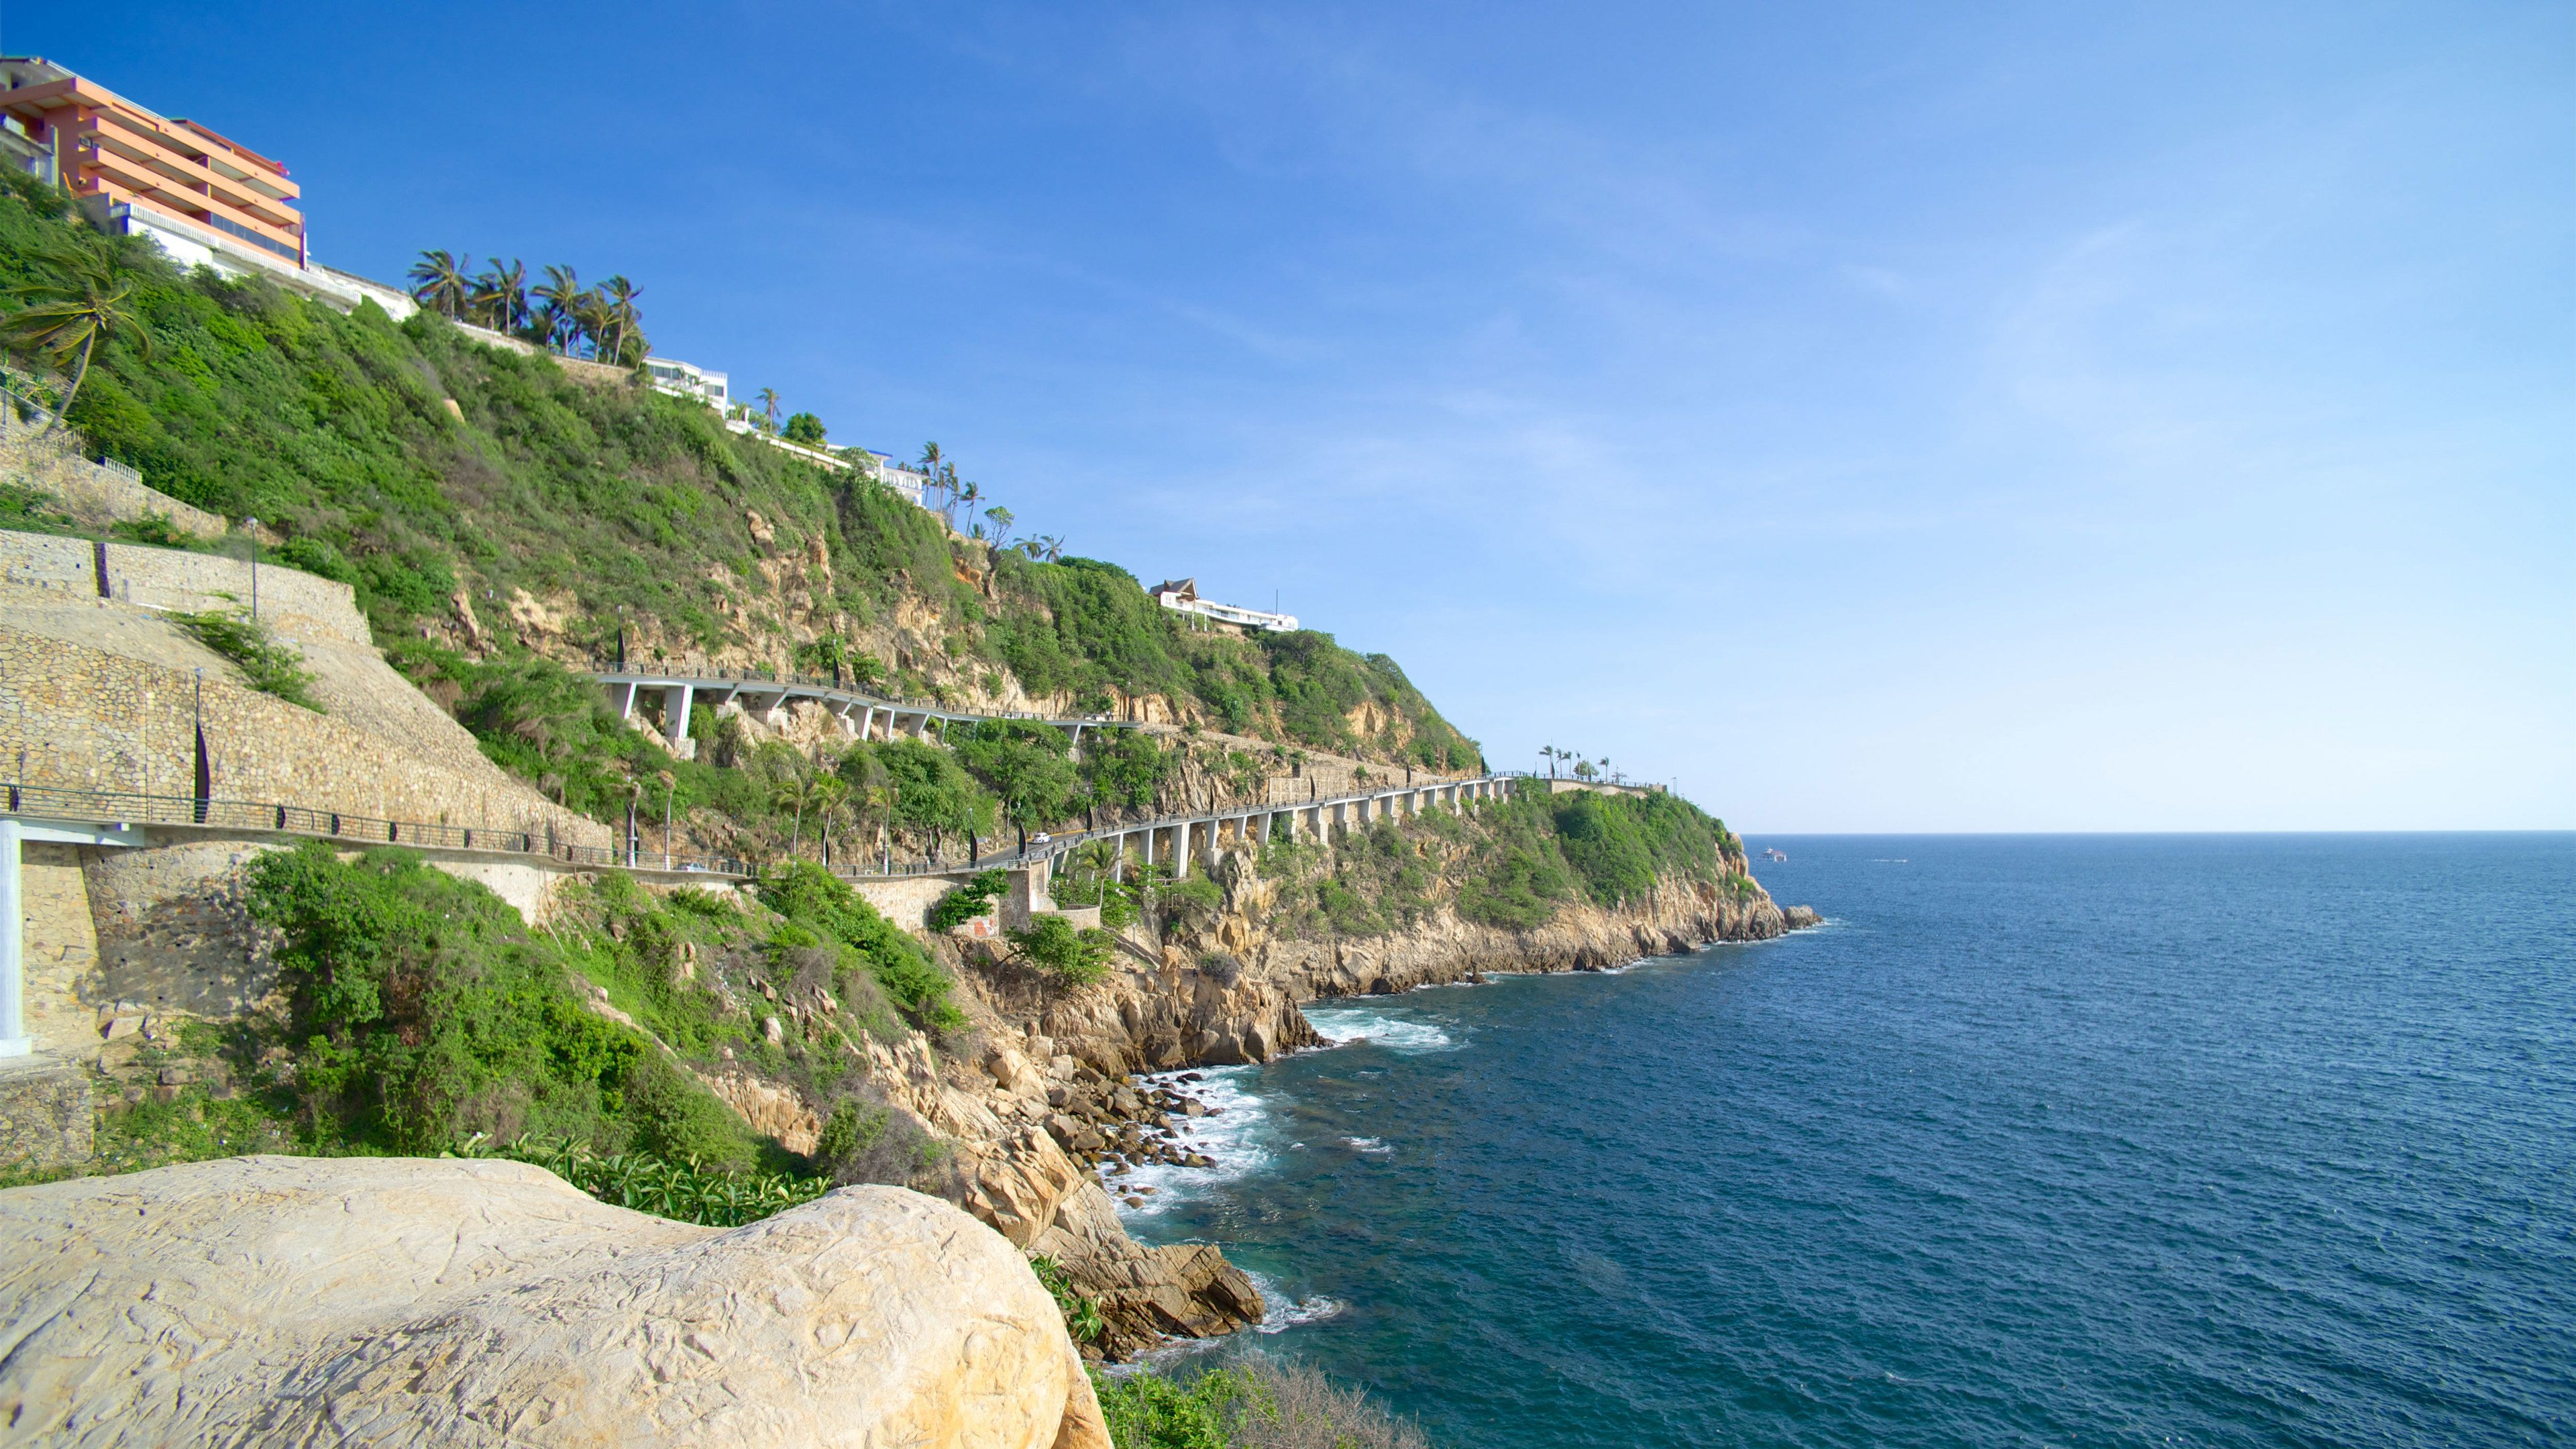 View of the rocky coast in Acapulco